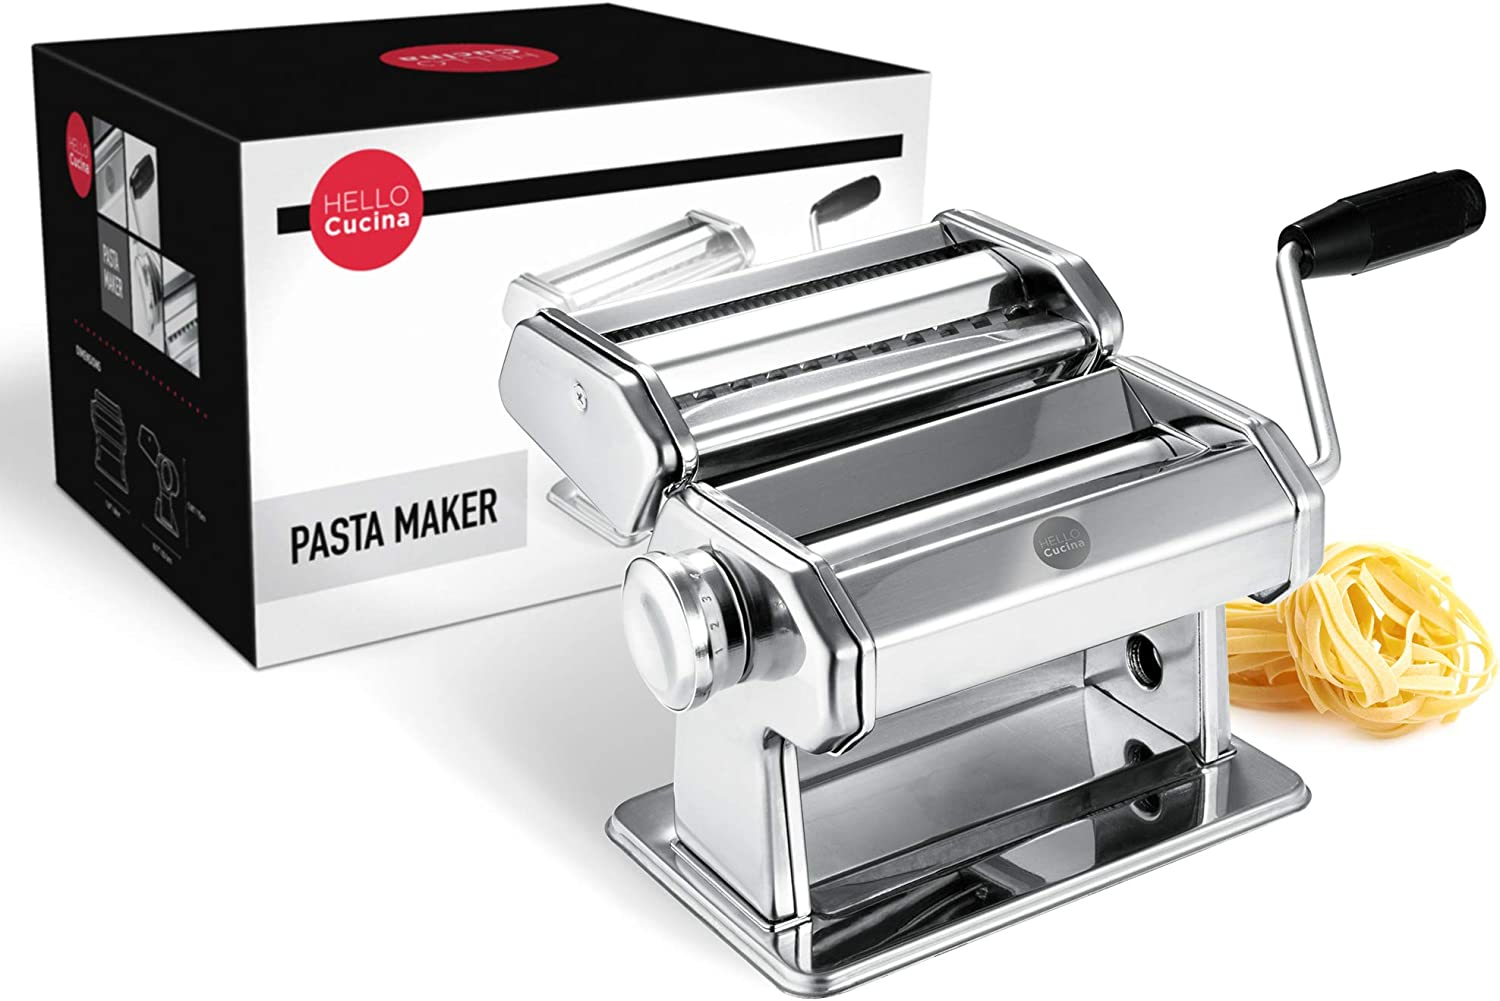 Hello Cucina Pasta Maker, Heavy Duty Dough Flattener Machine, Roller Cutter with Clamp & Hand Crank, 9 Adjustable Thickness Stainless Steel Rolling Press for Ravioli, Spaghetti with User Manual